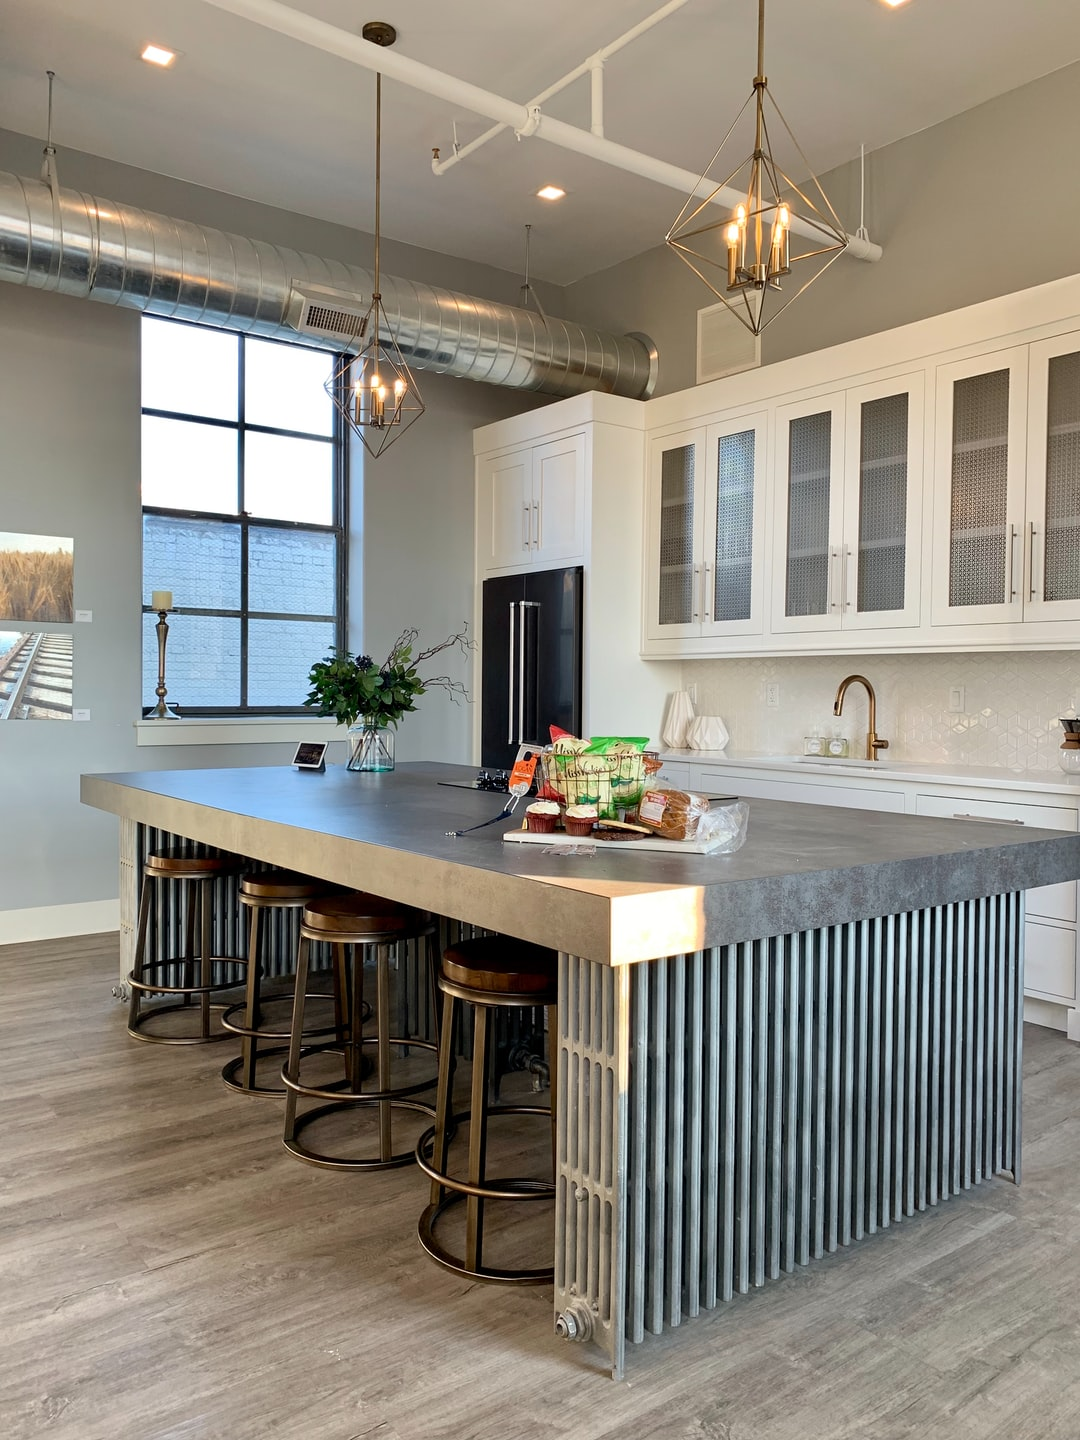 Modern Kitchen Design, Island Seating.  Chic revitalization for an Industrial building that features the table top, embedded cooktop and supported by radiators native to the building. The perfect blend of historical elements and modern sensibilities.   Flats Luxury Suites. 22 East Center, Logan Utah. Hotel, Airbnb, Rental Lodging #flatsluxurysuites #loganutah #loganvenues #BoutiqueHotel  https://www.instagram.com/AwCreativeUT/ https://www.AwCreativeUT.com/ #AwCreativeUT #awcreative #AdamWinger Adam Robert Winger